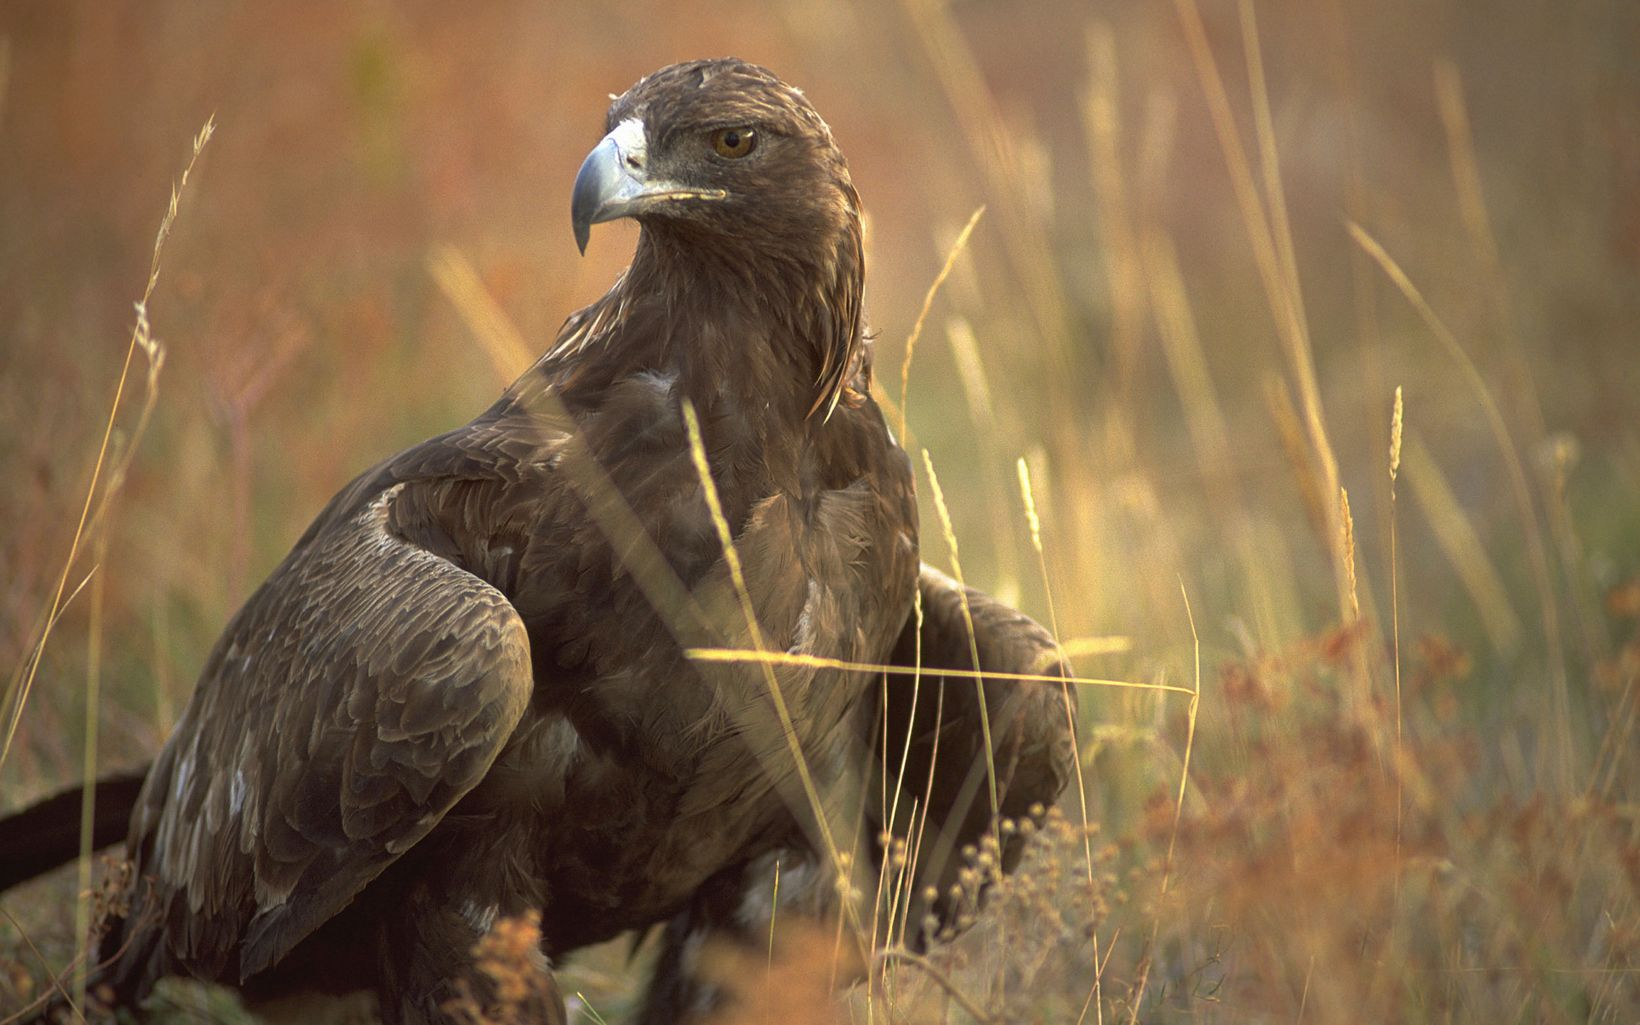 A golden eagle at Zumwalt Prairie Preserve